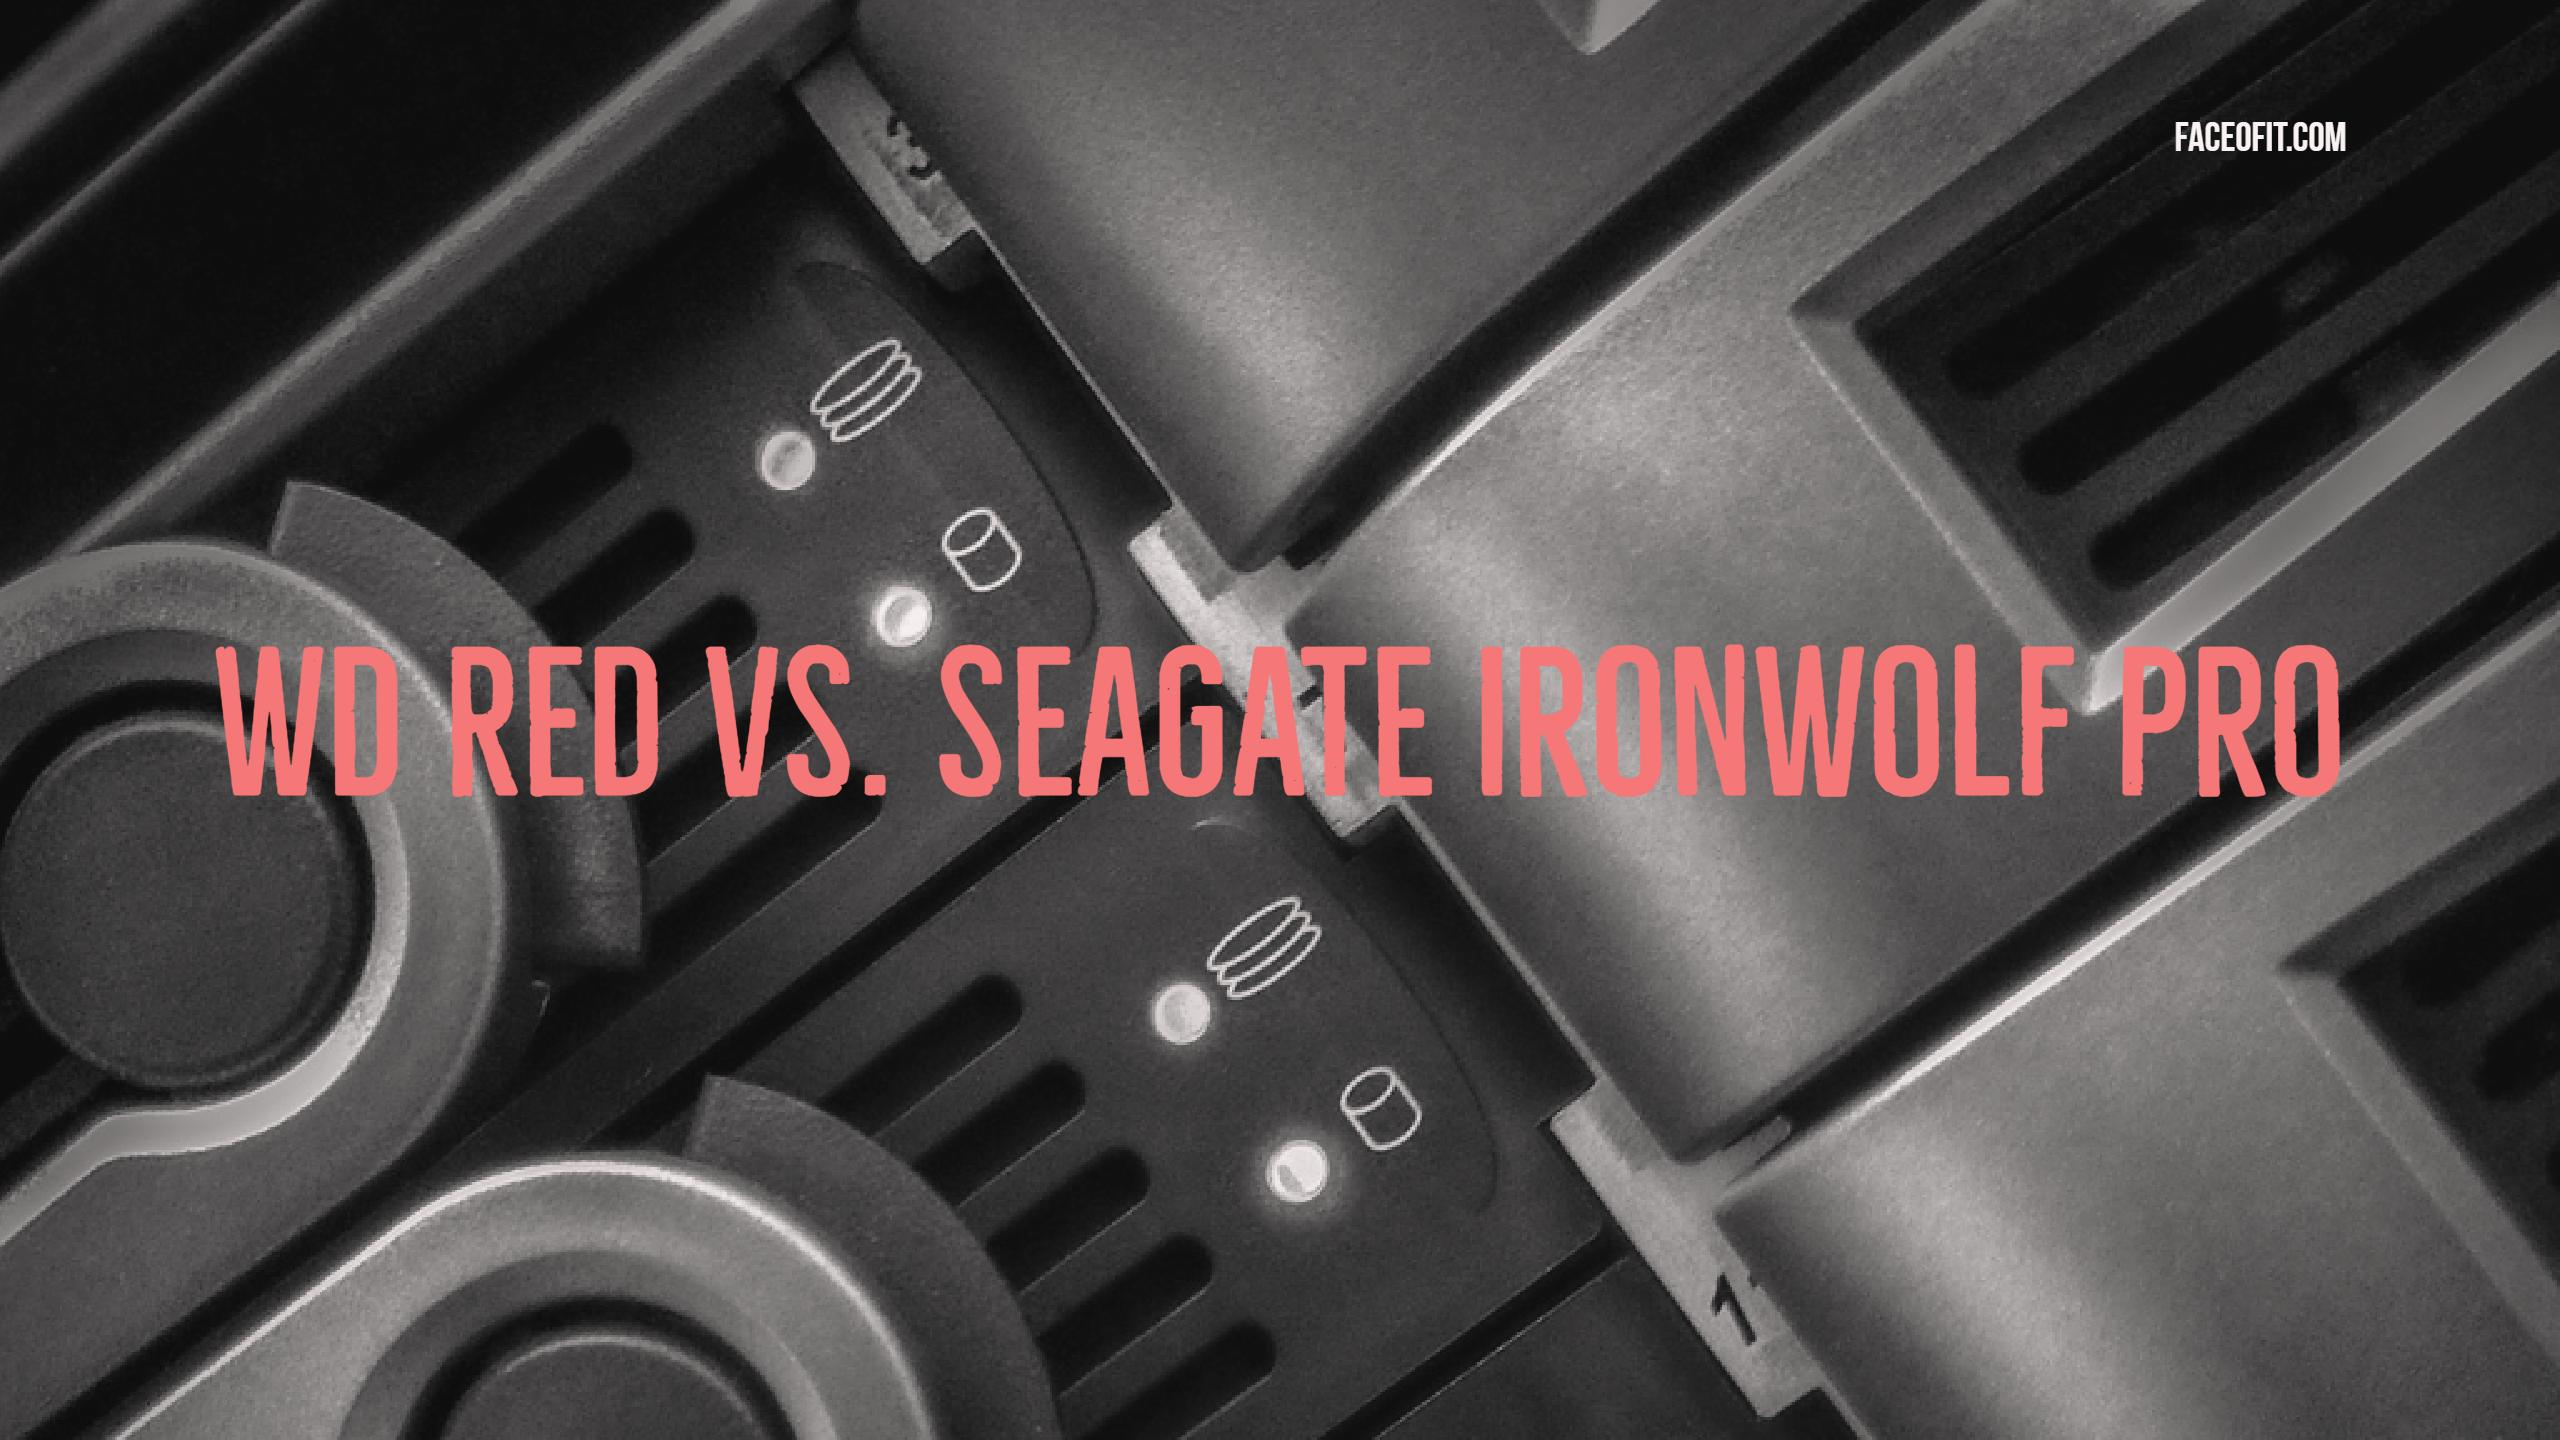 WD Red vs Seagate Ironwolf